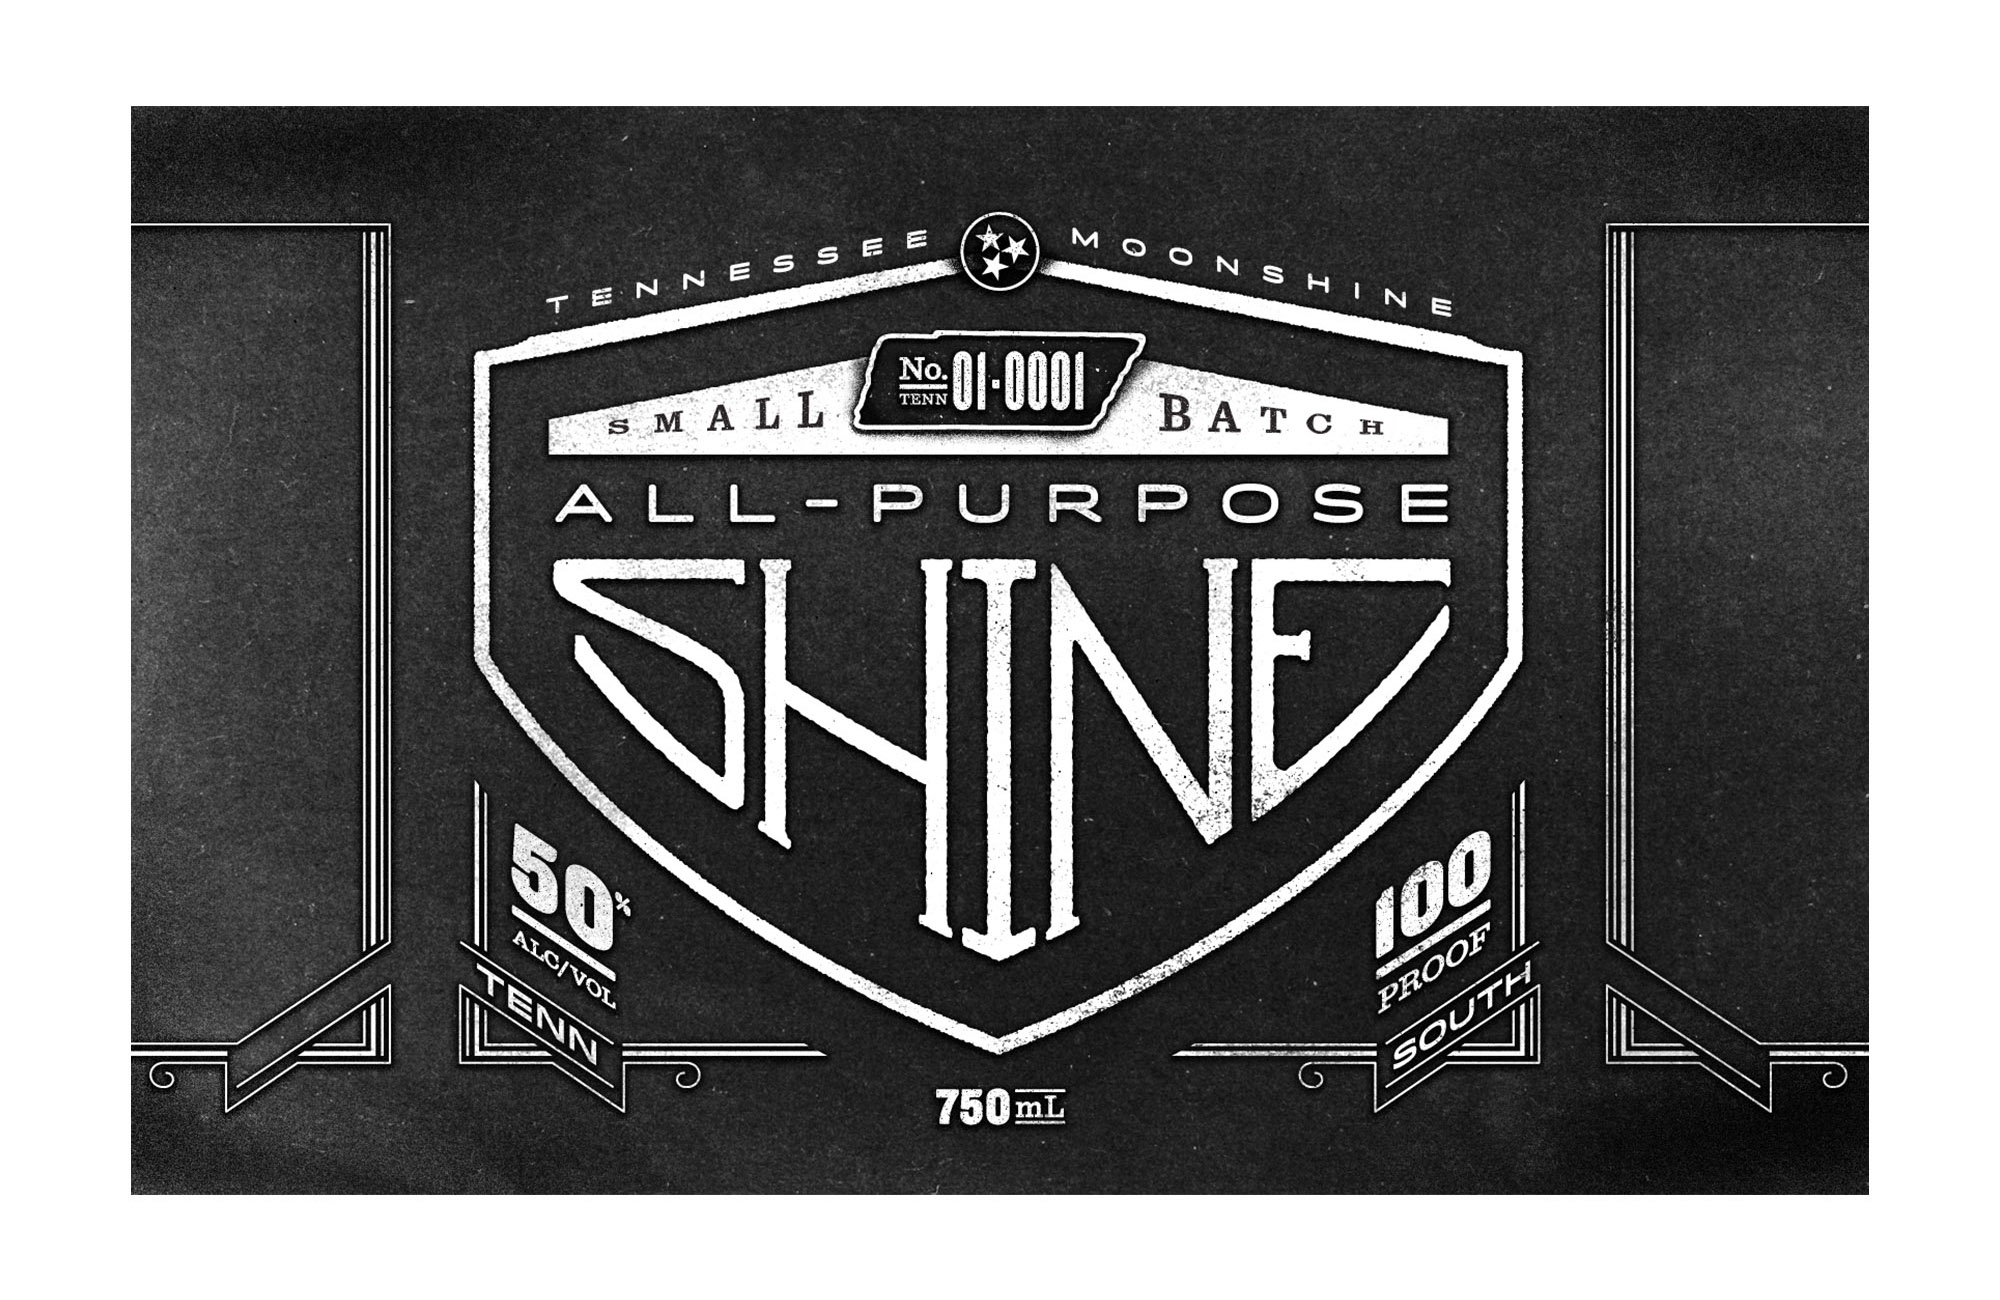 All-Purpose-Shine-1944-TN-License-Plate